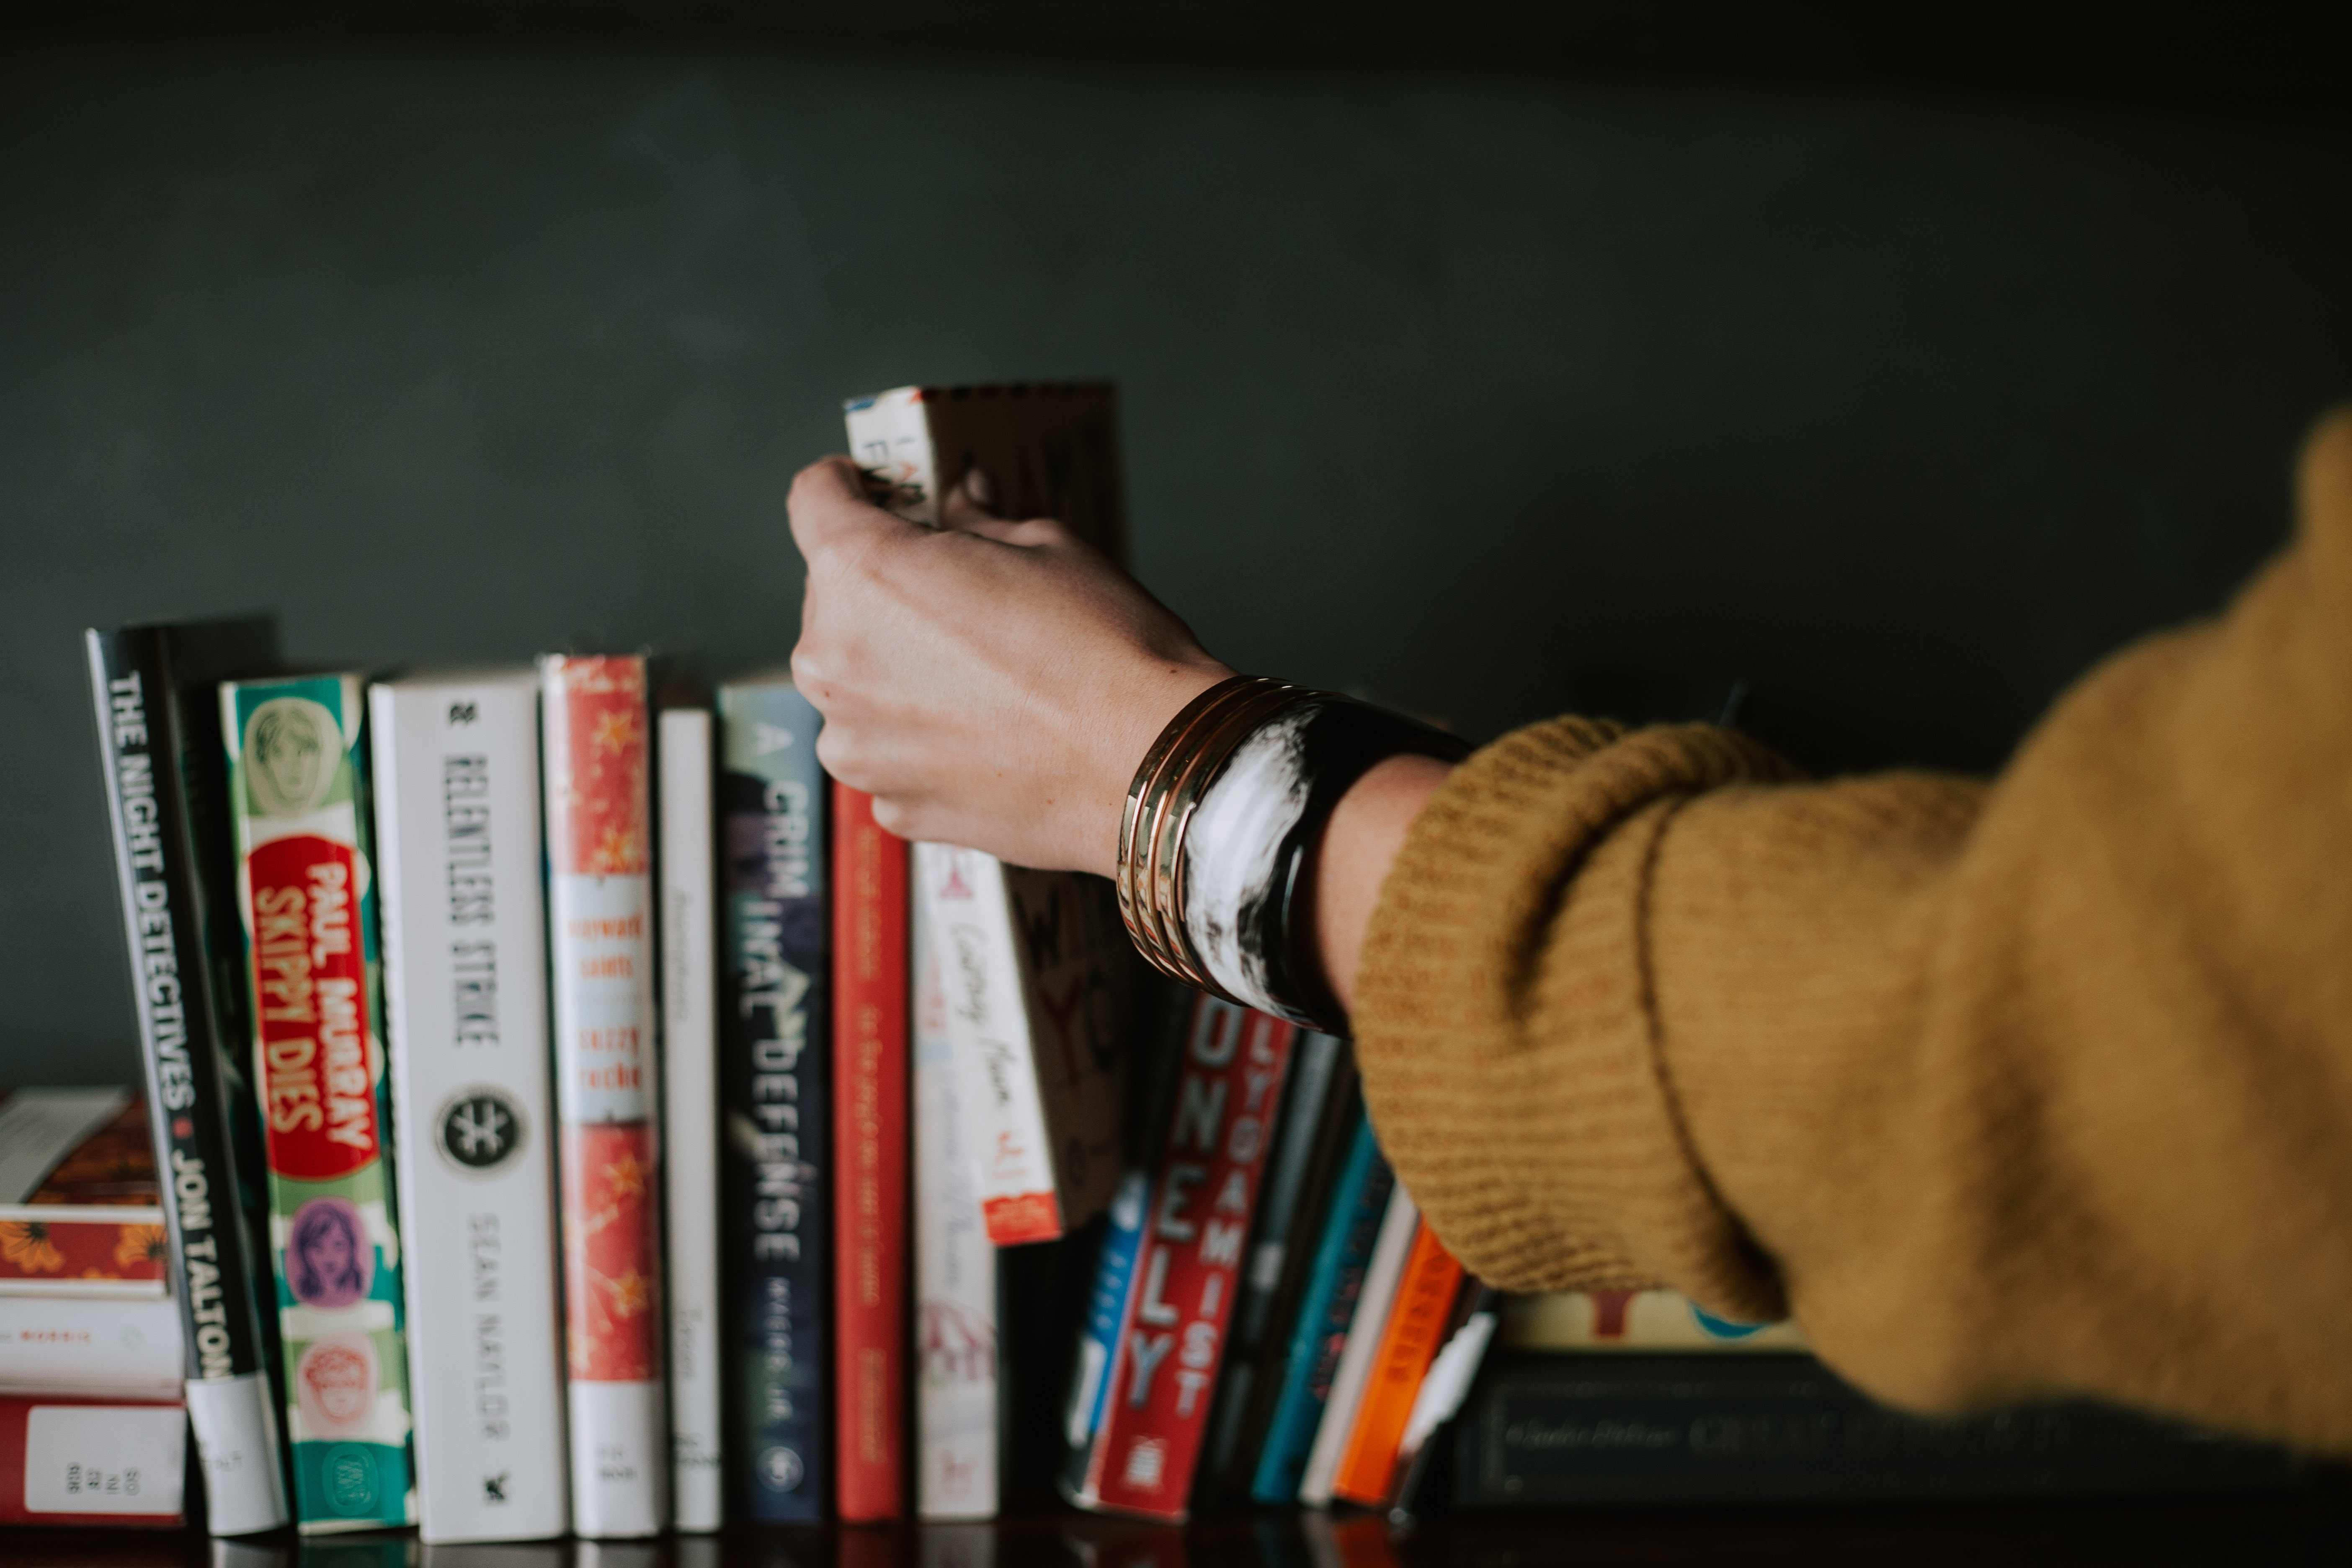 Image of a book shelf, with someone taking a book out. Depicts the theme of the article, literary translation.